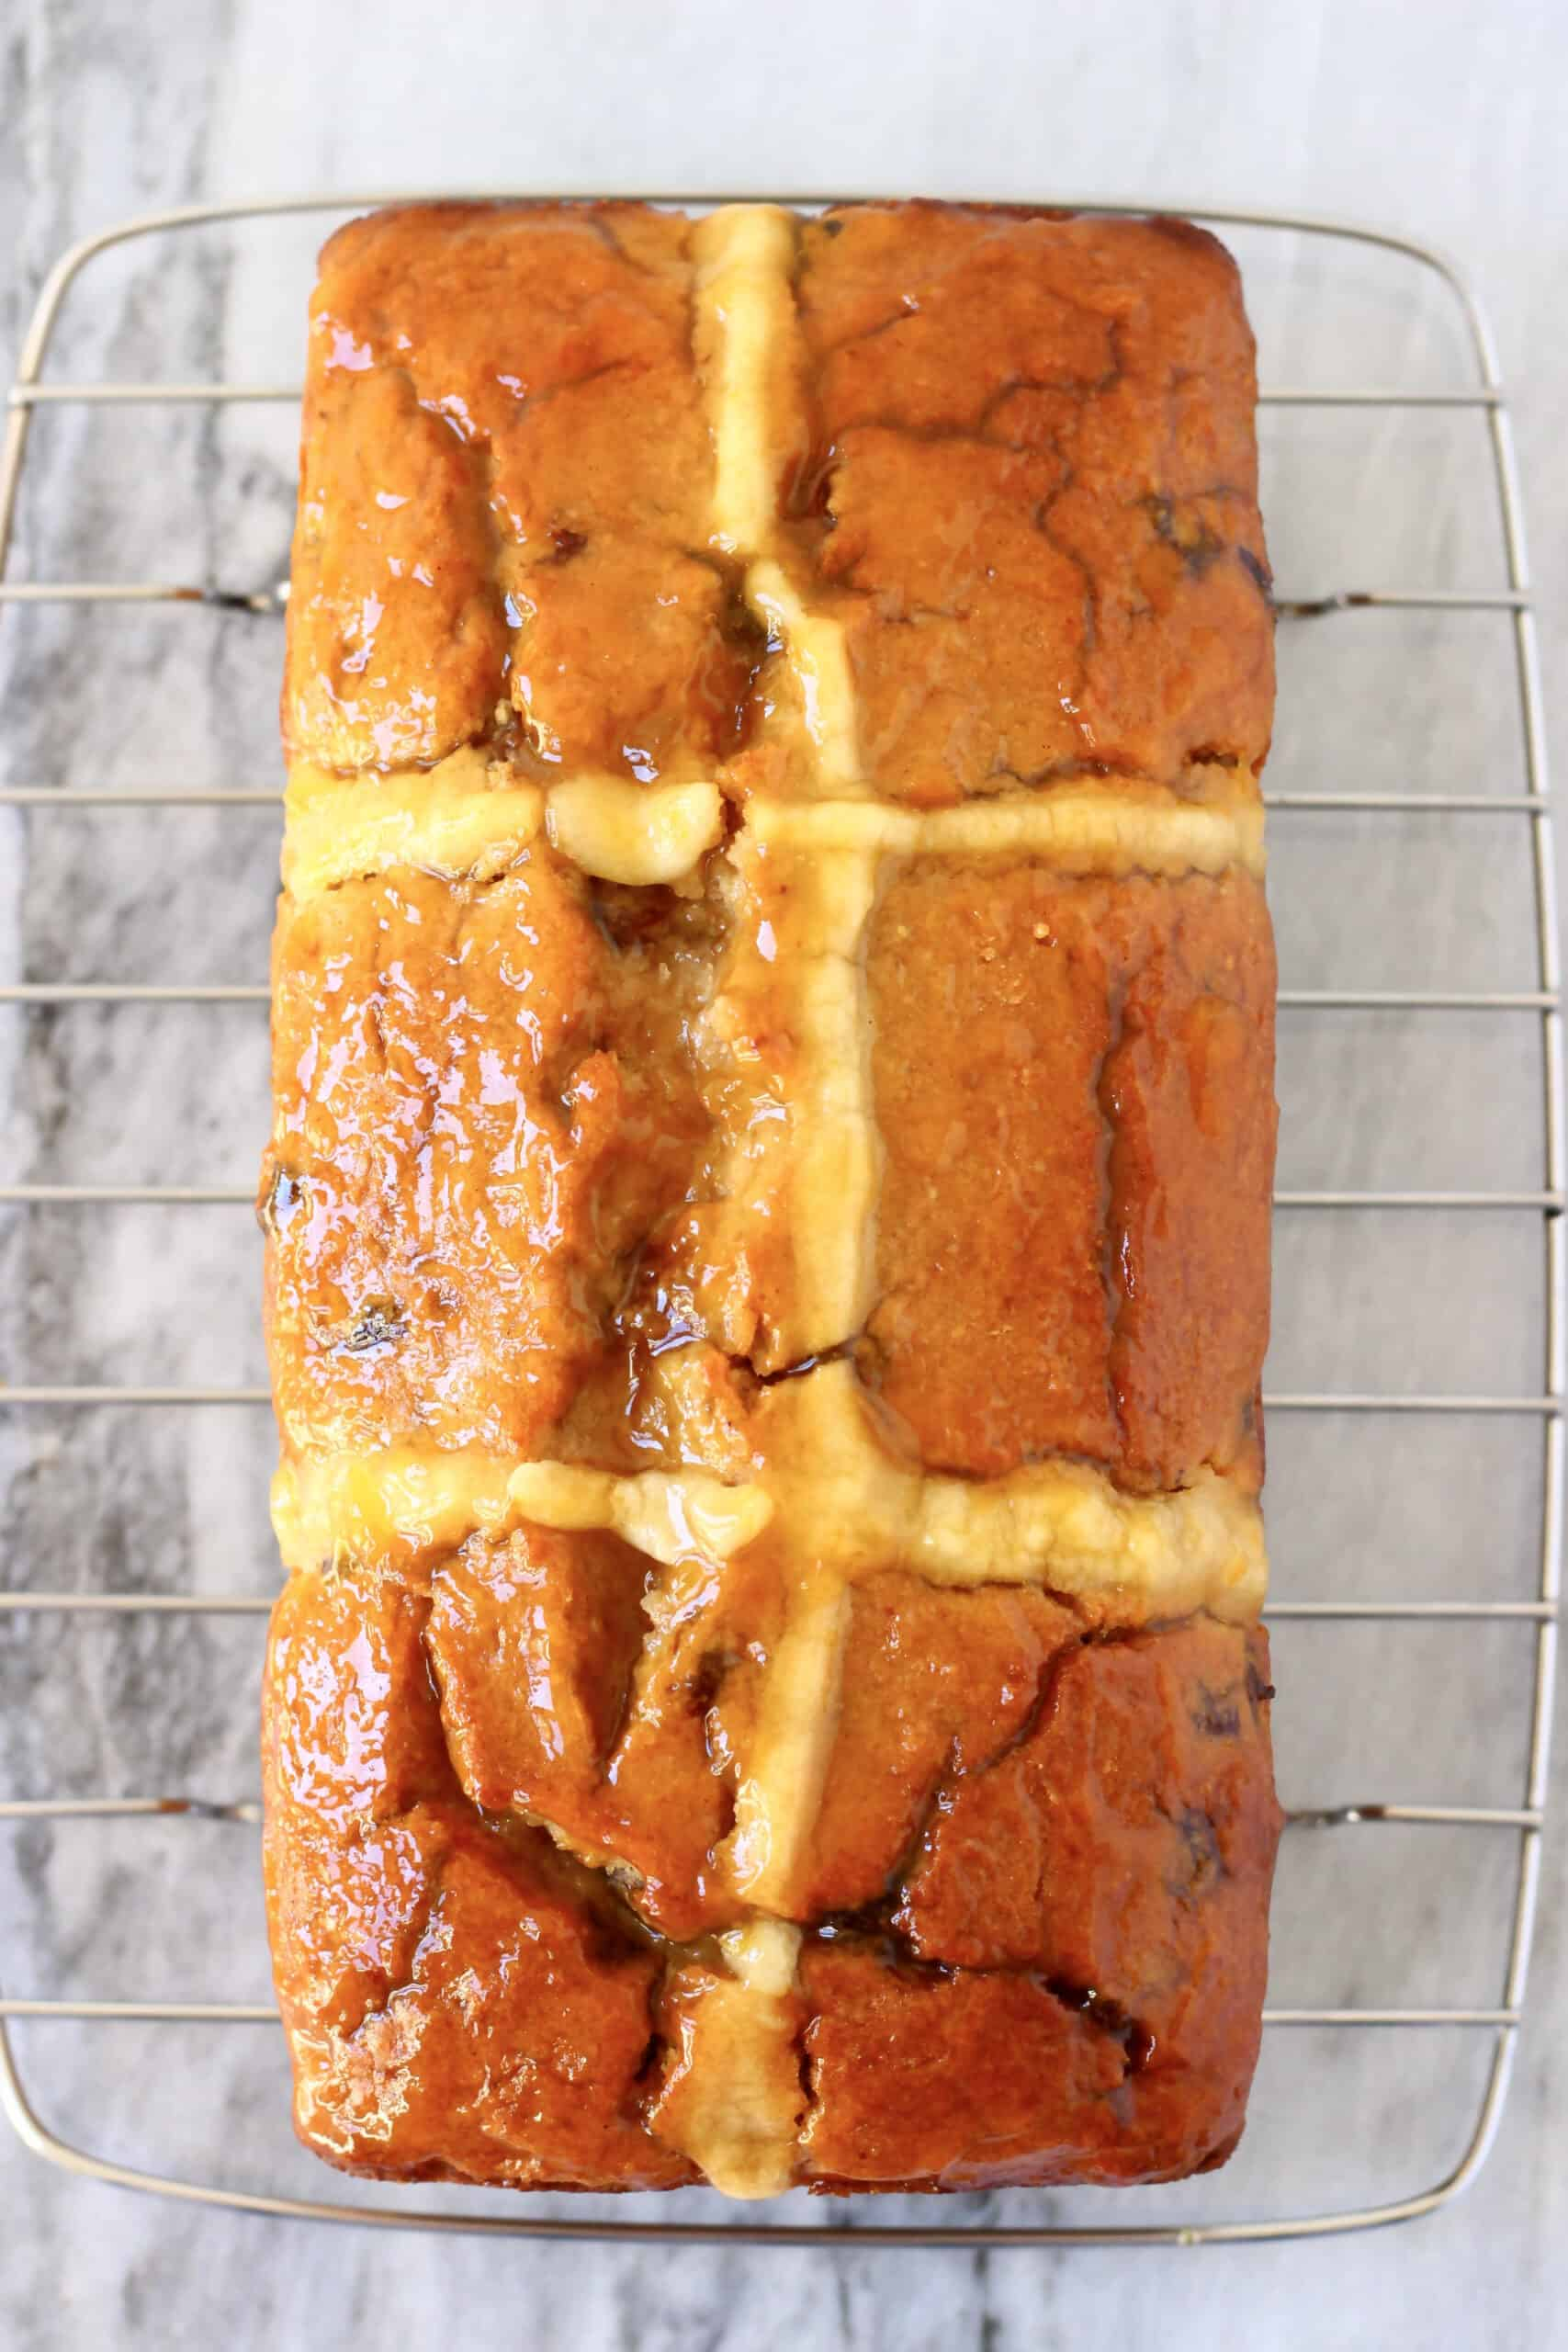 A gluten-free vegan hot cross bun loaf spread with apricot jam on a wire rack